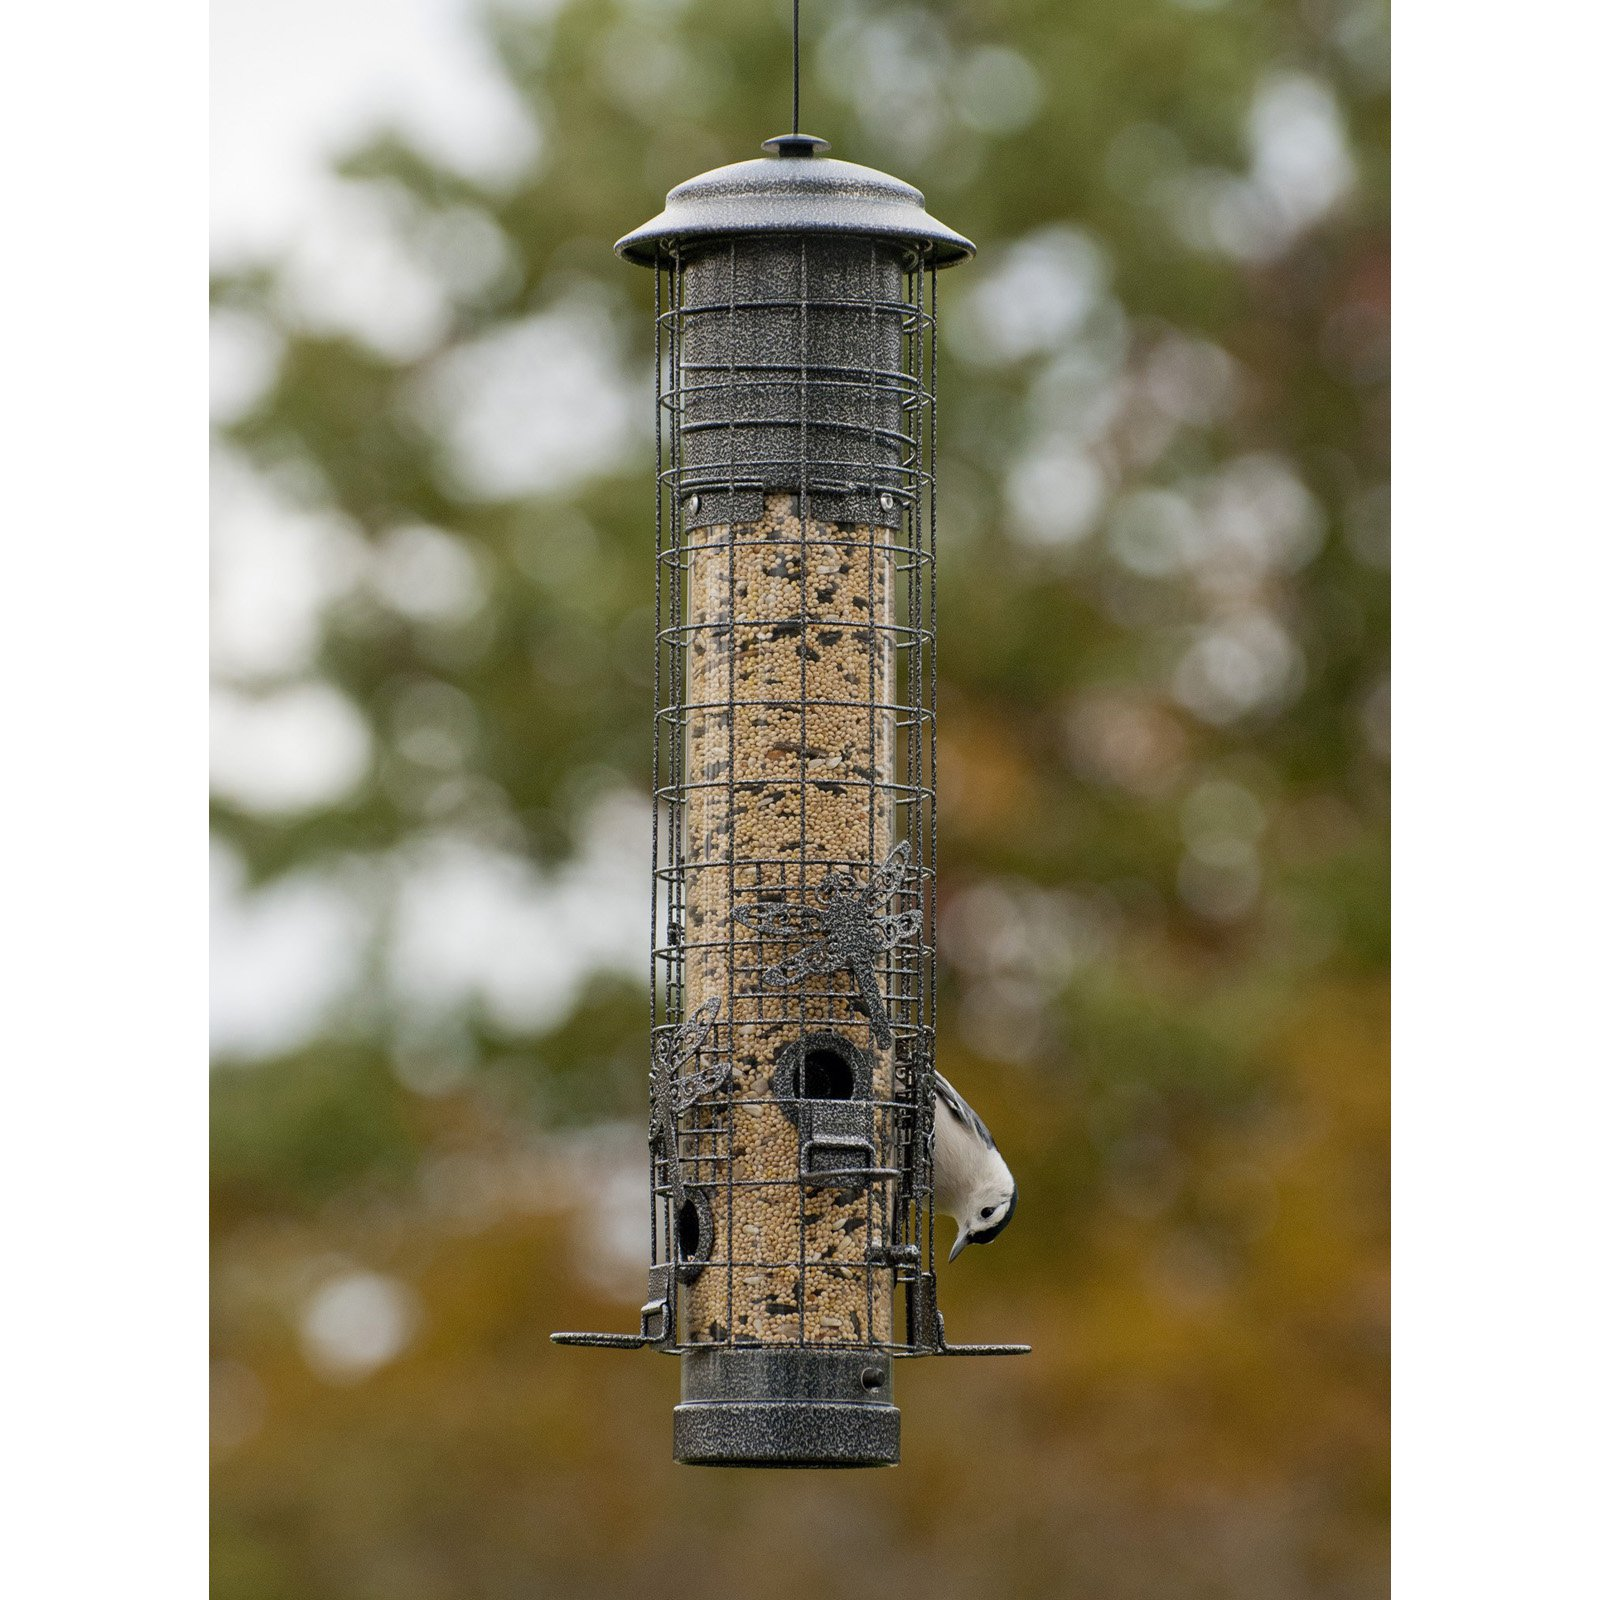 "Audubon NA32431 18"" Tube Bird Feeder"